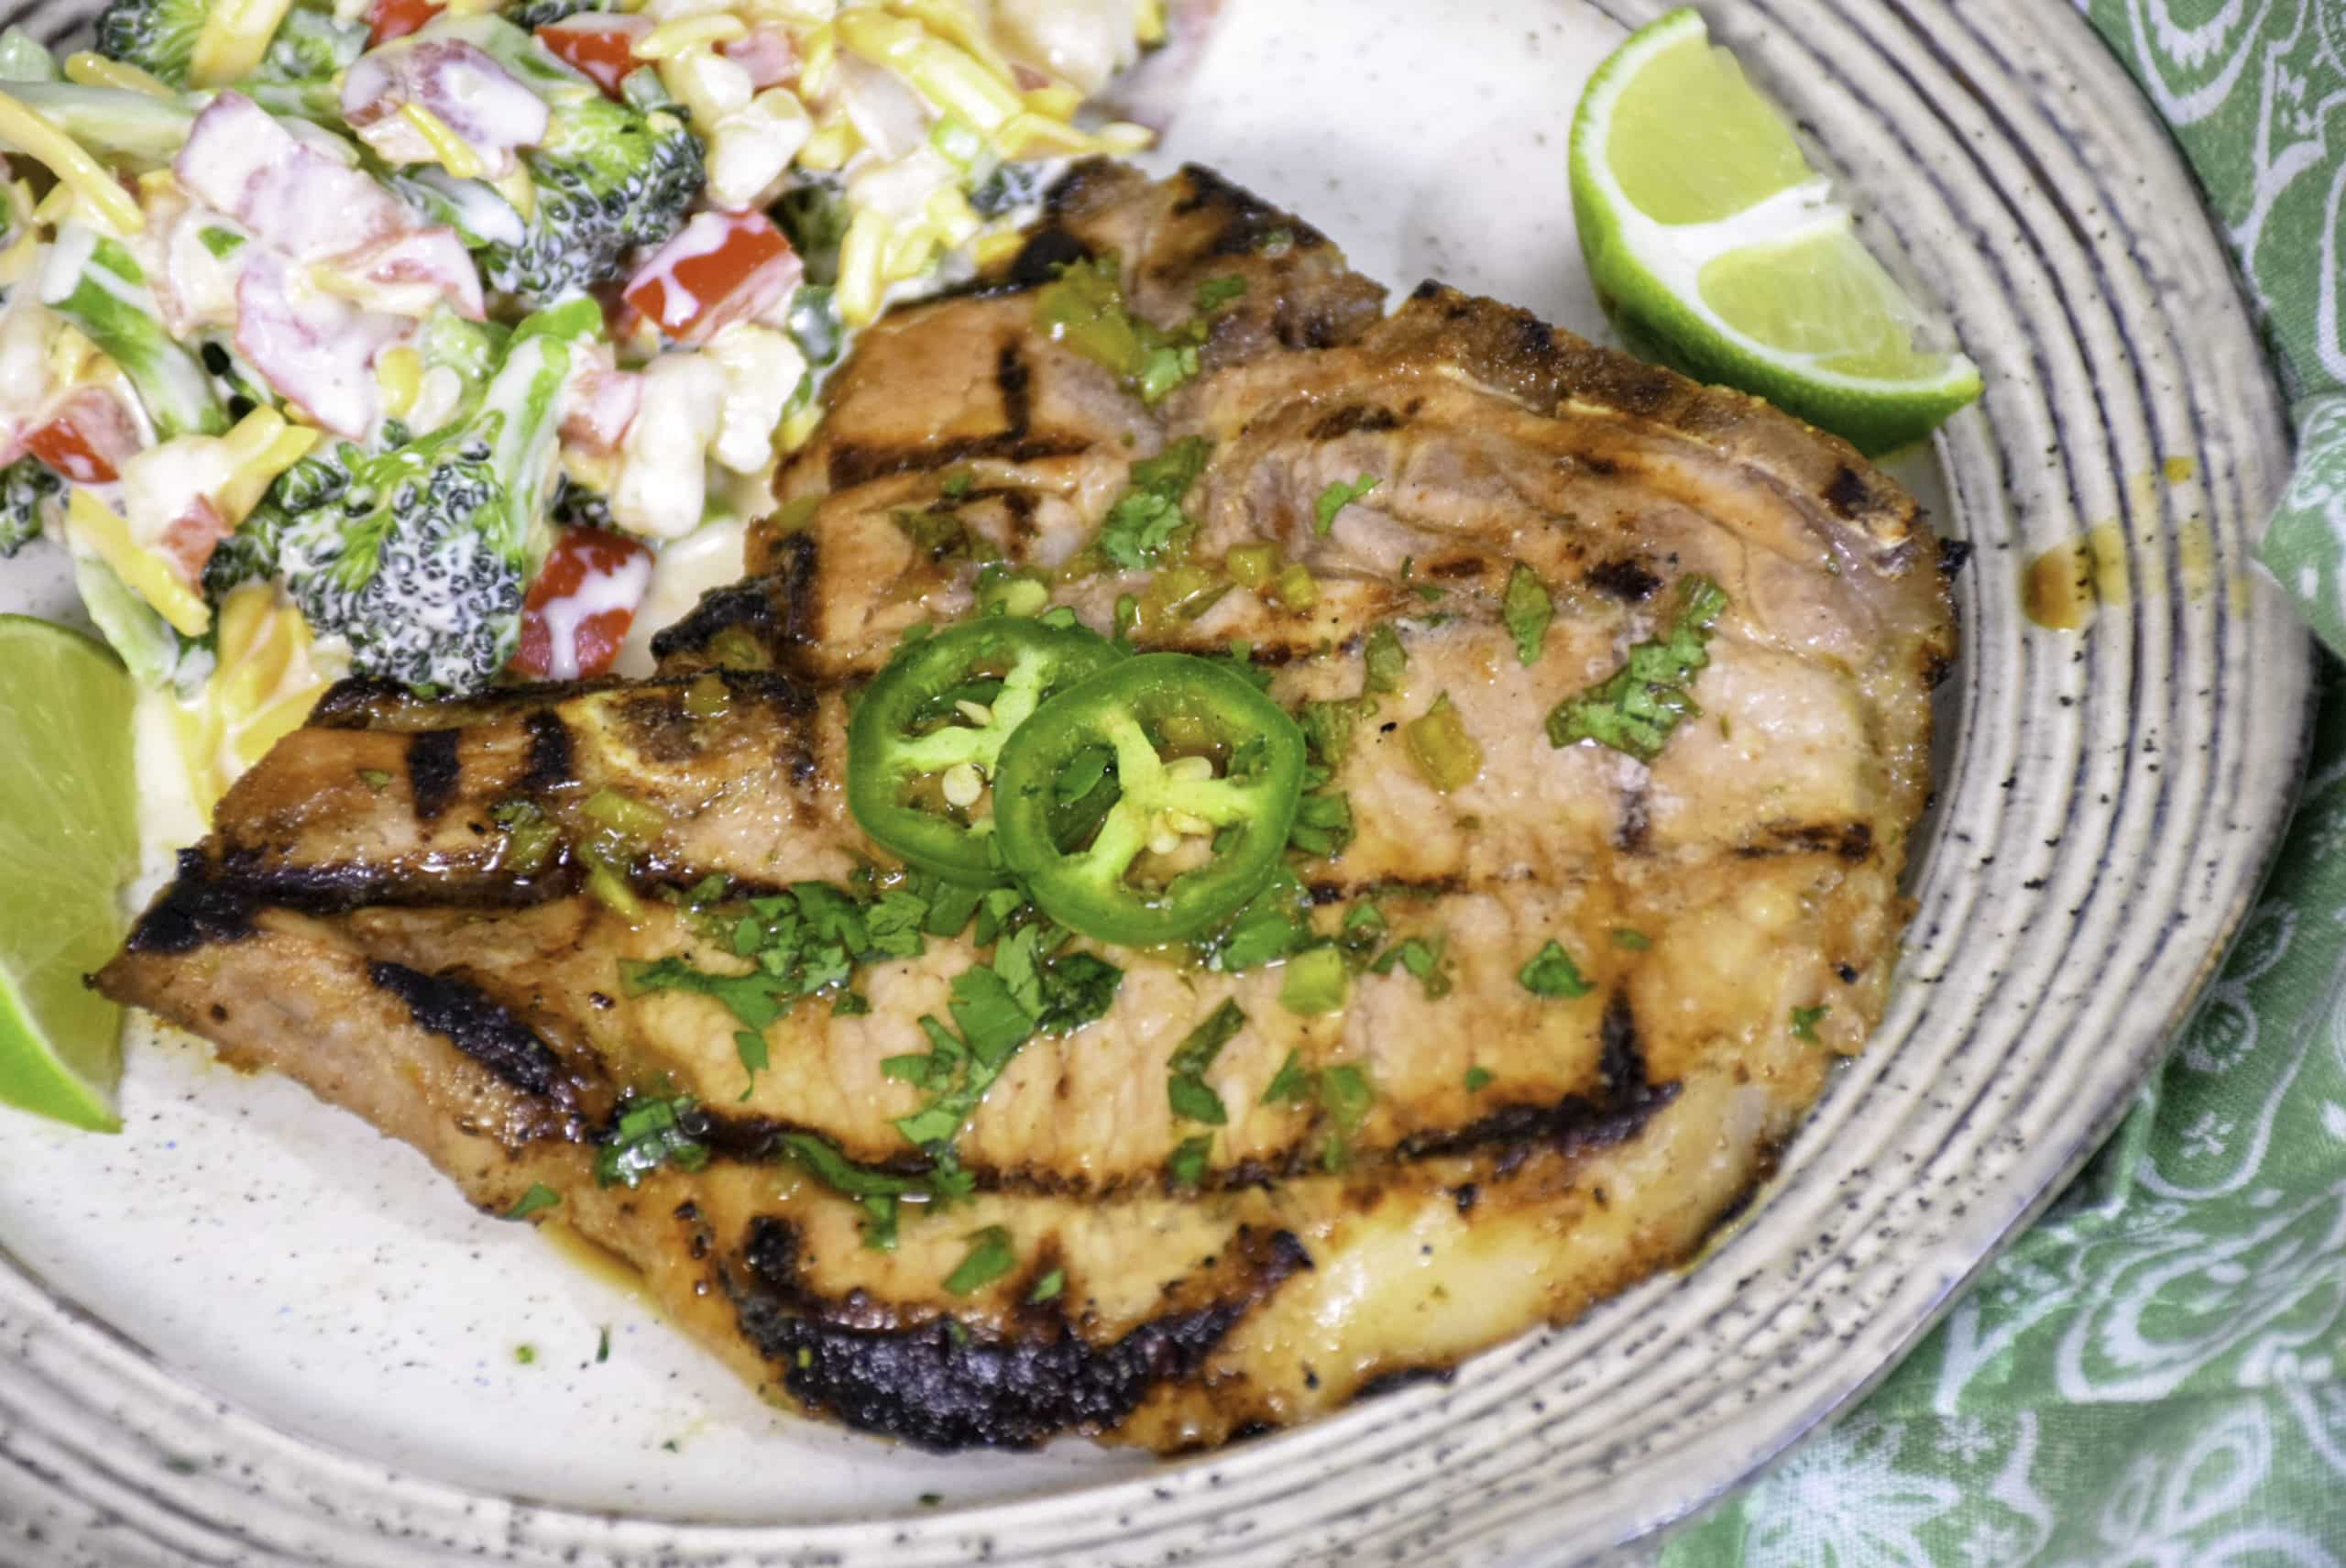 Cilantro Lime Grilled Pork Chops